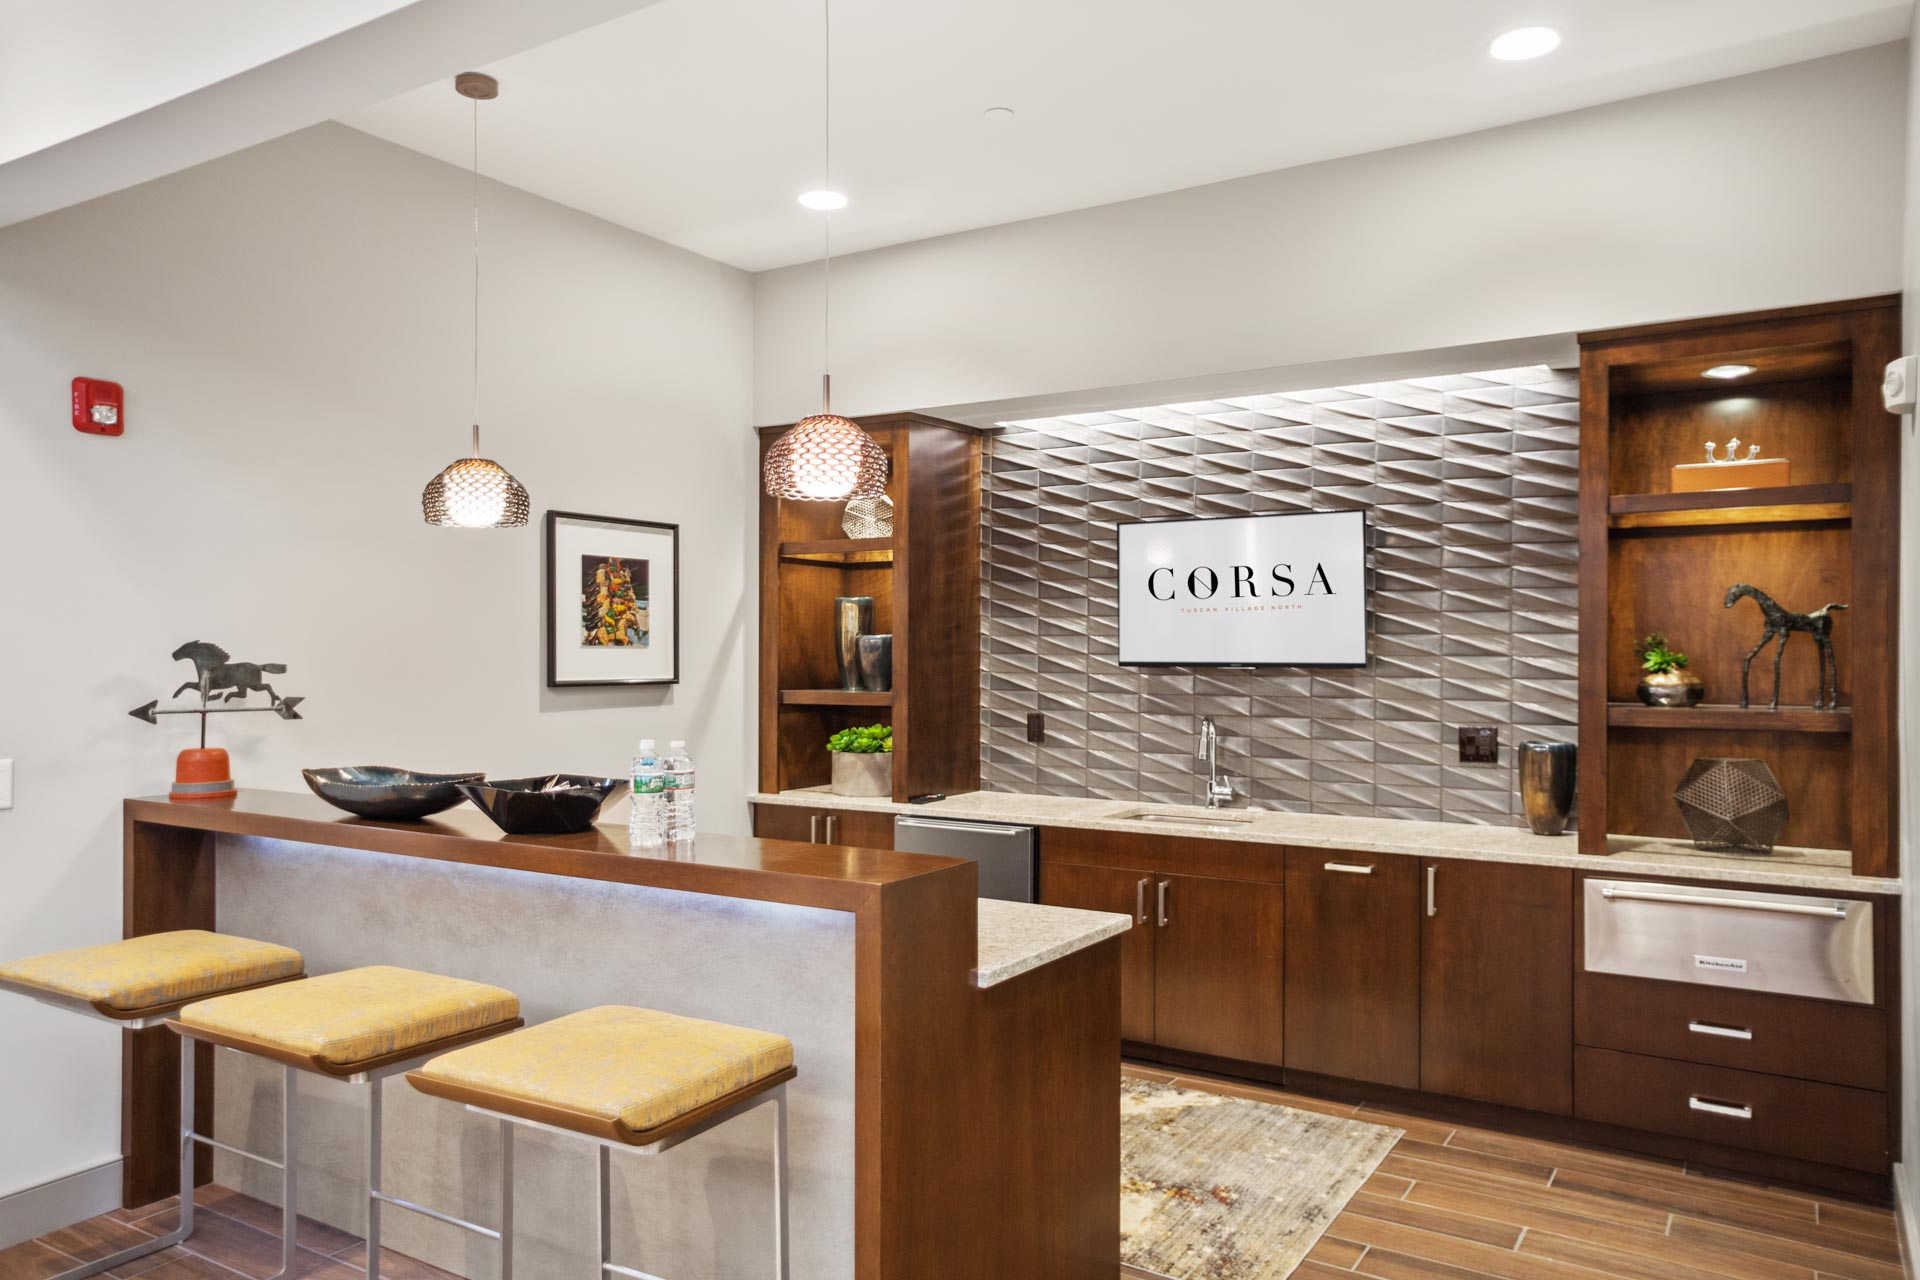 The resident chef's kitchen inside the Corsa Apartments in Salem, New Hampshire